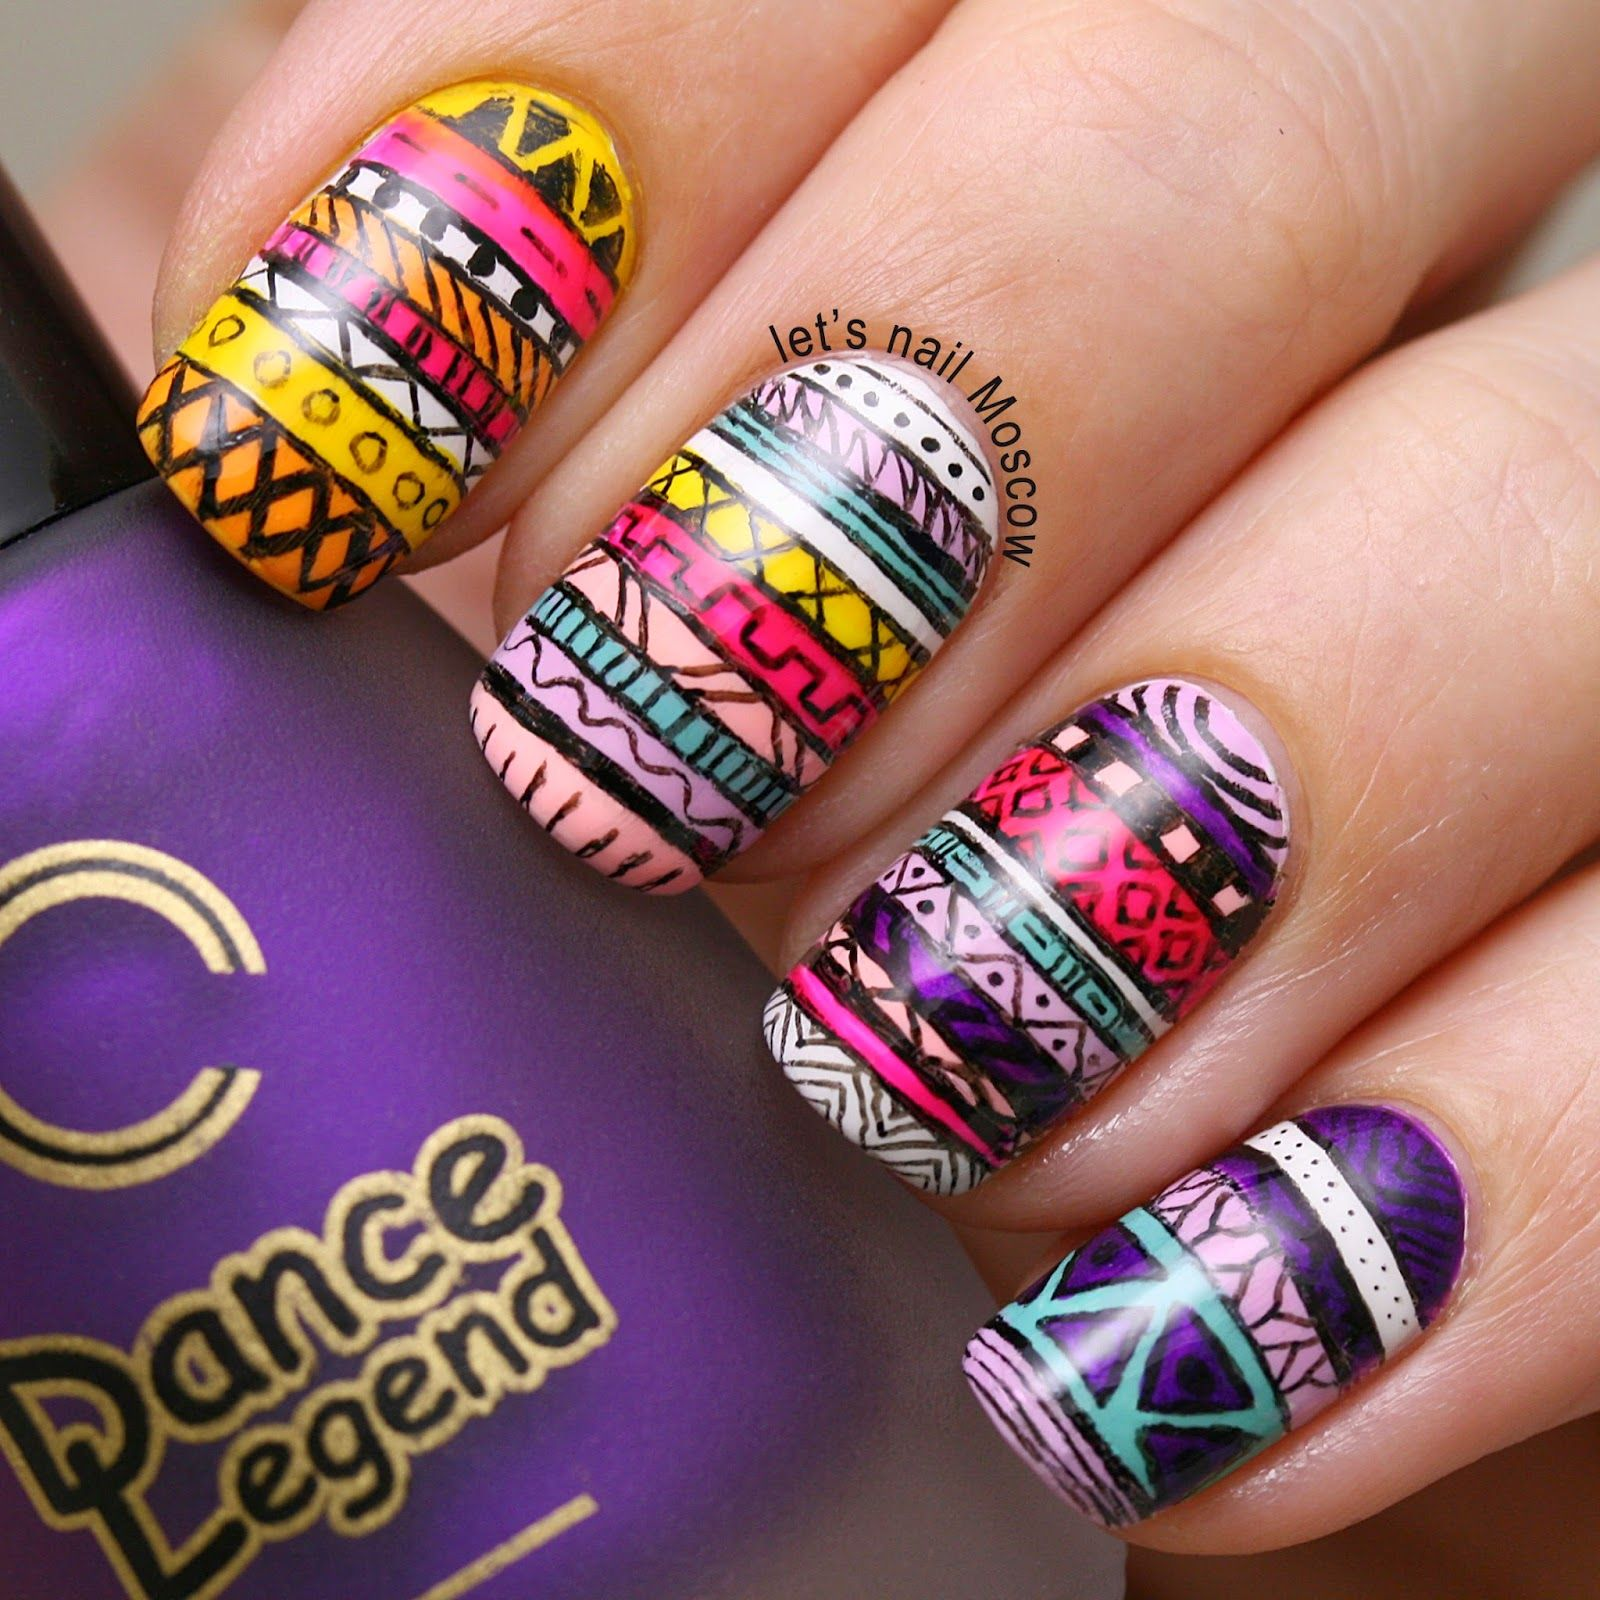 Let S Talk Nail Art: Let's Nail Moscow. Tribal Nails. Nail Art. Nail Design